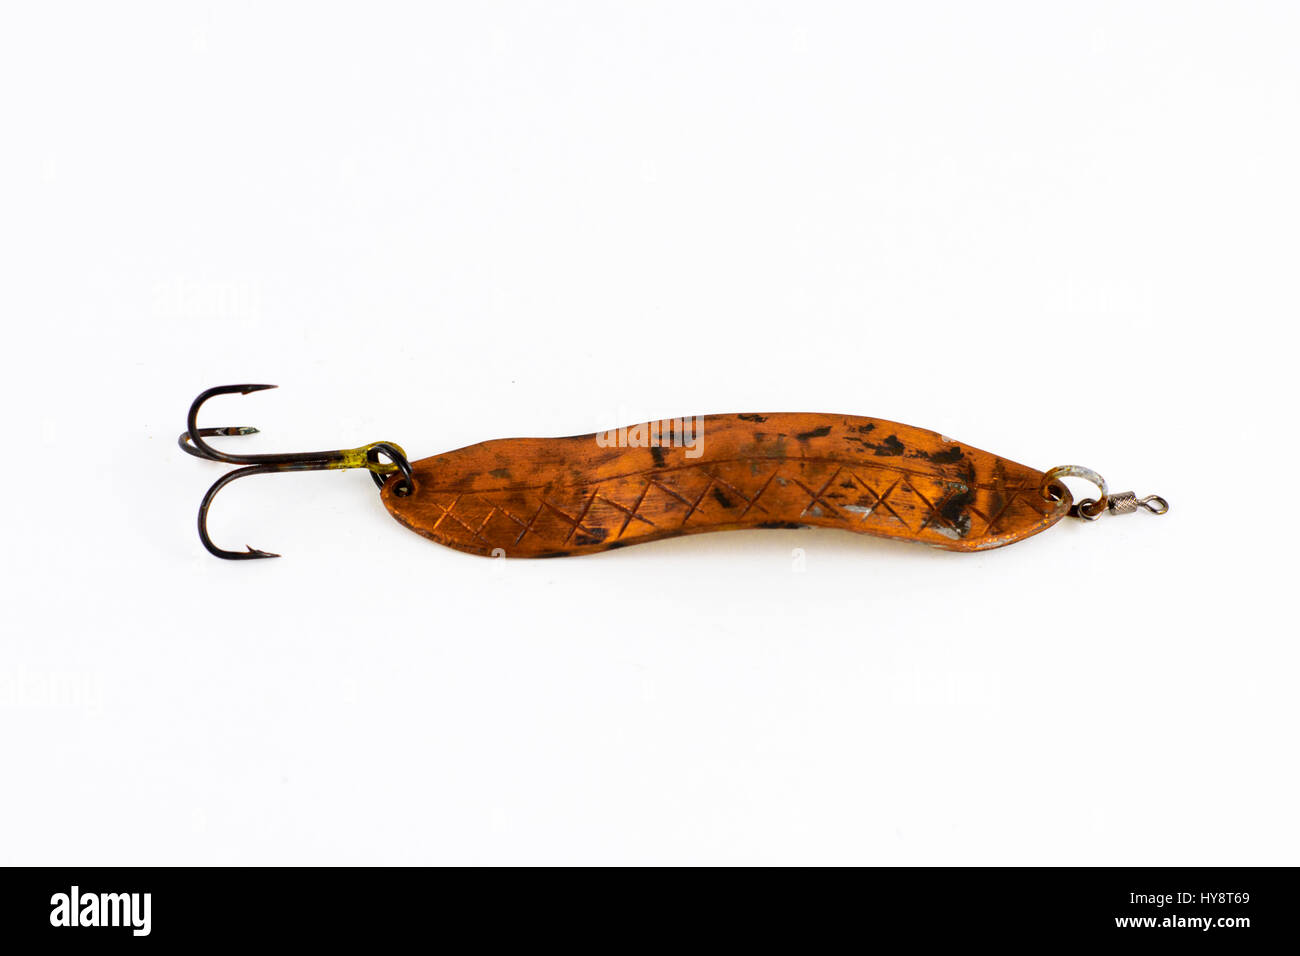 Exhibition of self-made fishing metal lures. Bait for fishing in the shape of a spoon with a hook on a white background. Stock Photo